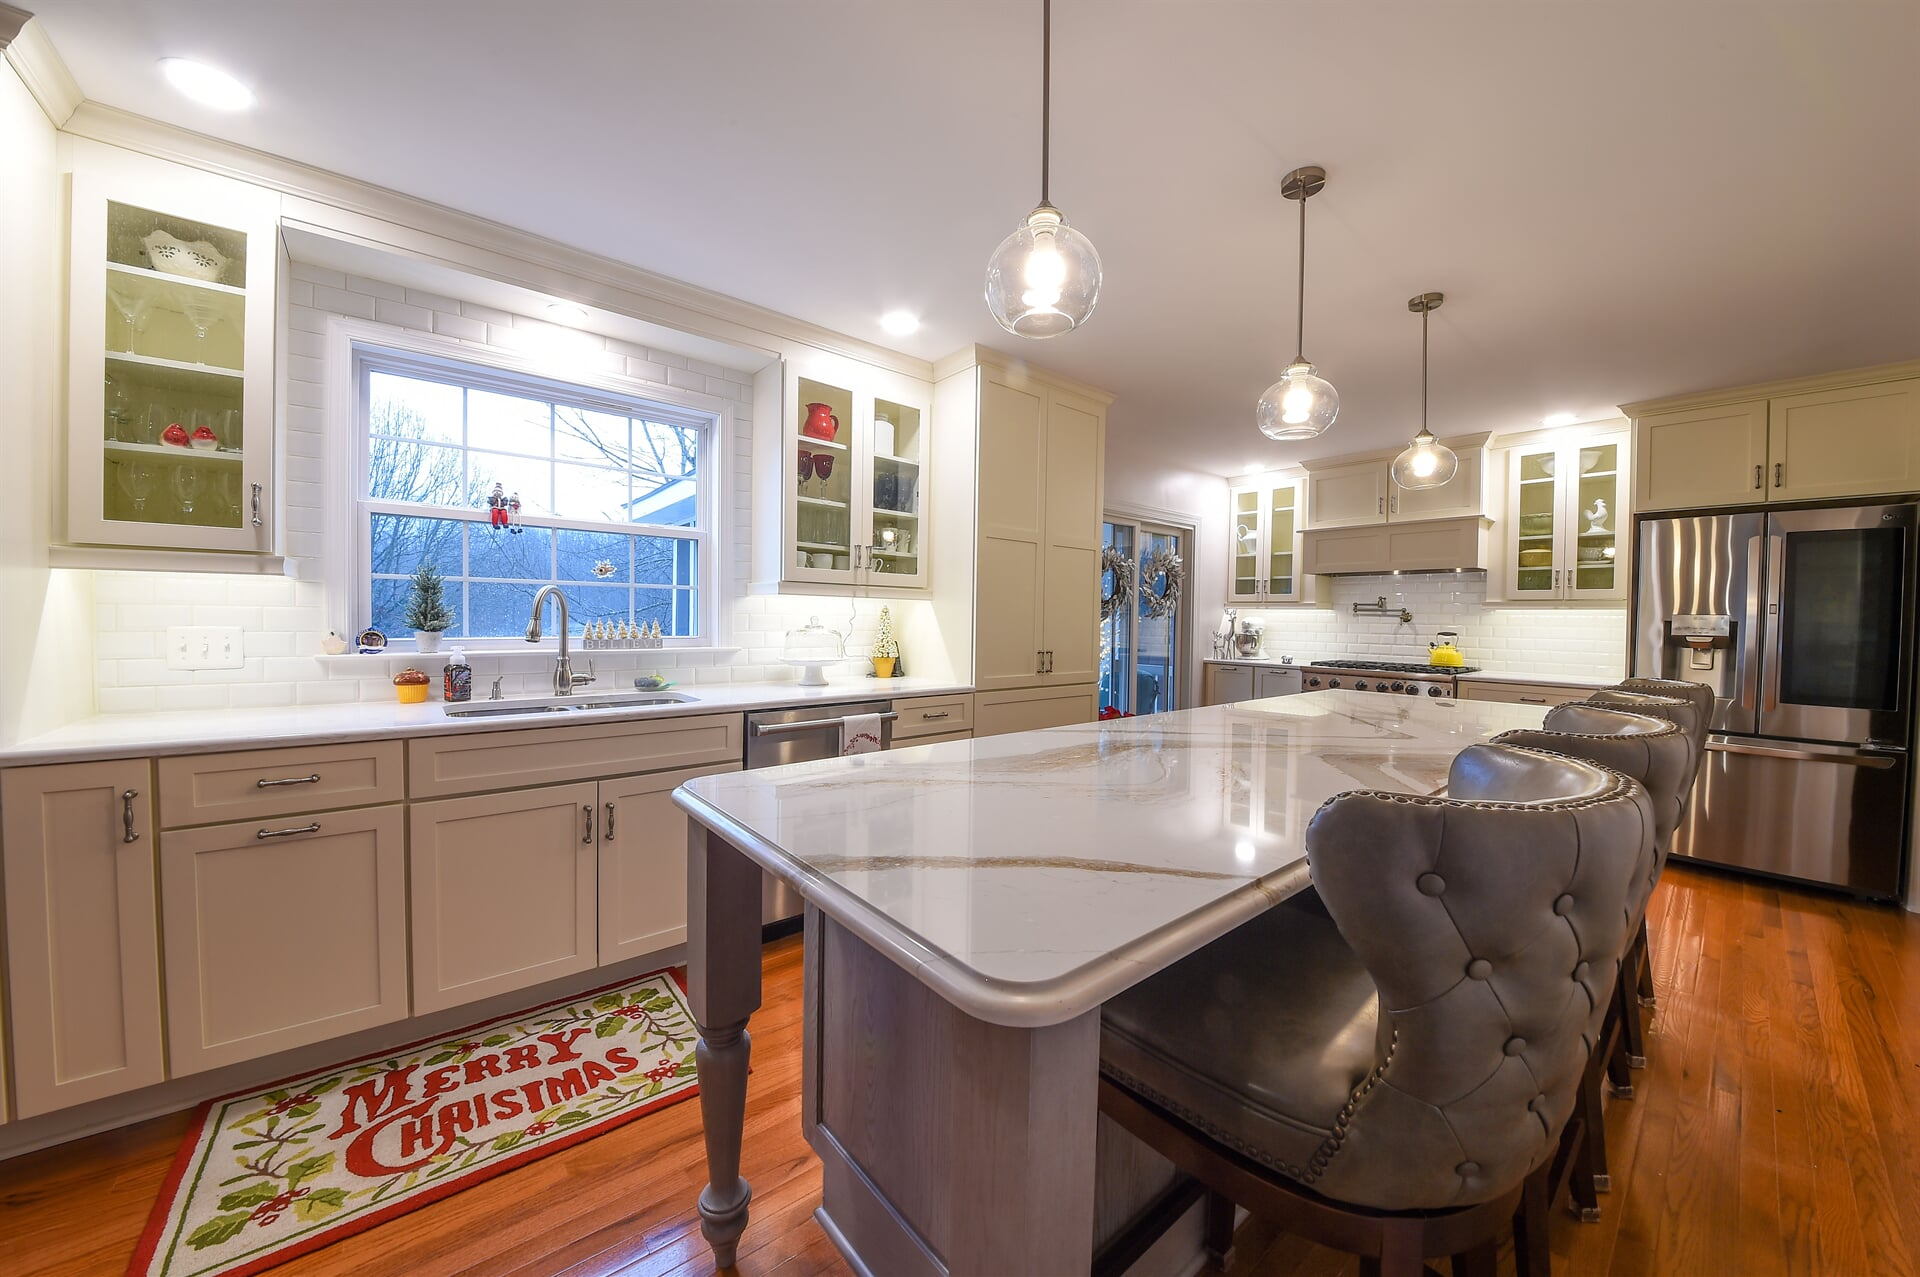 Kitchen remodeling in Sunderland, MD by Southern Maryland Kitchen Bath Floors & Design